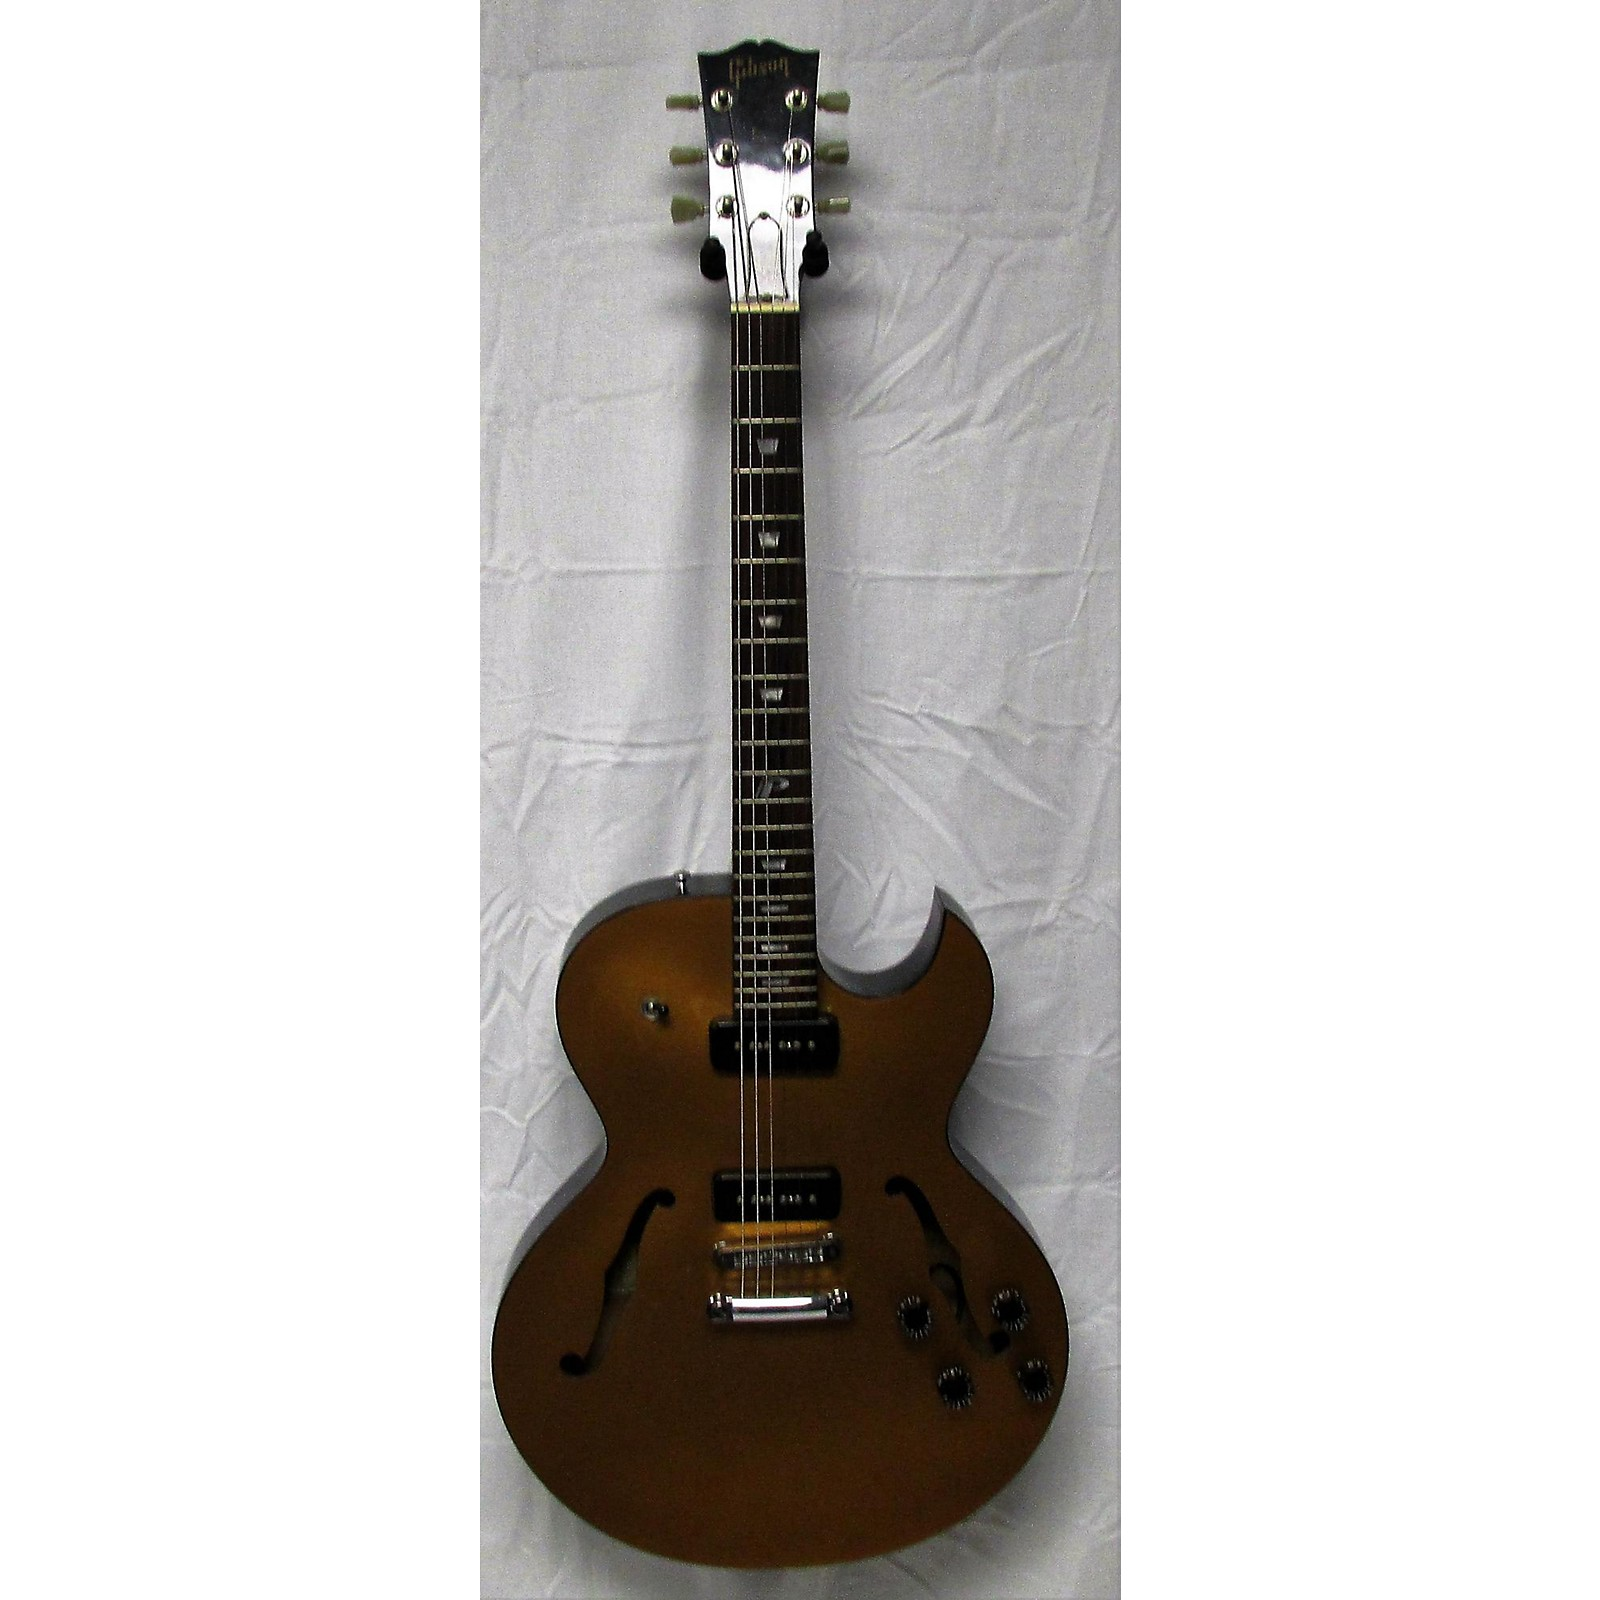 Gibson ES137 Hollow Body Electric Guitar